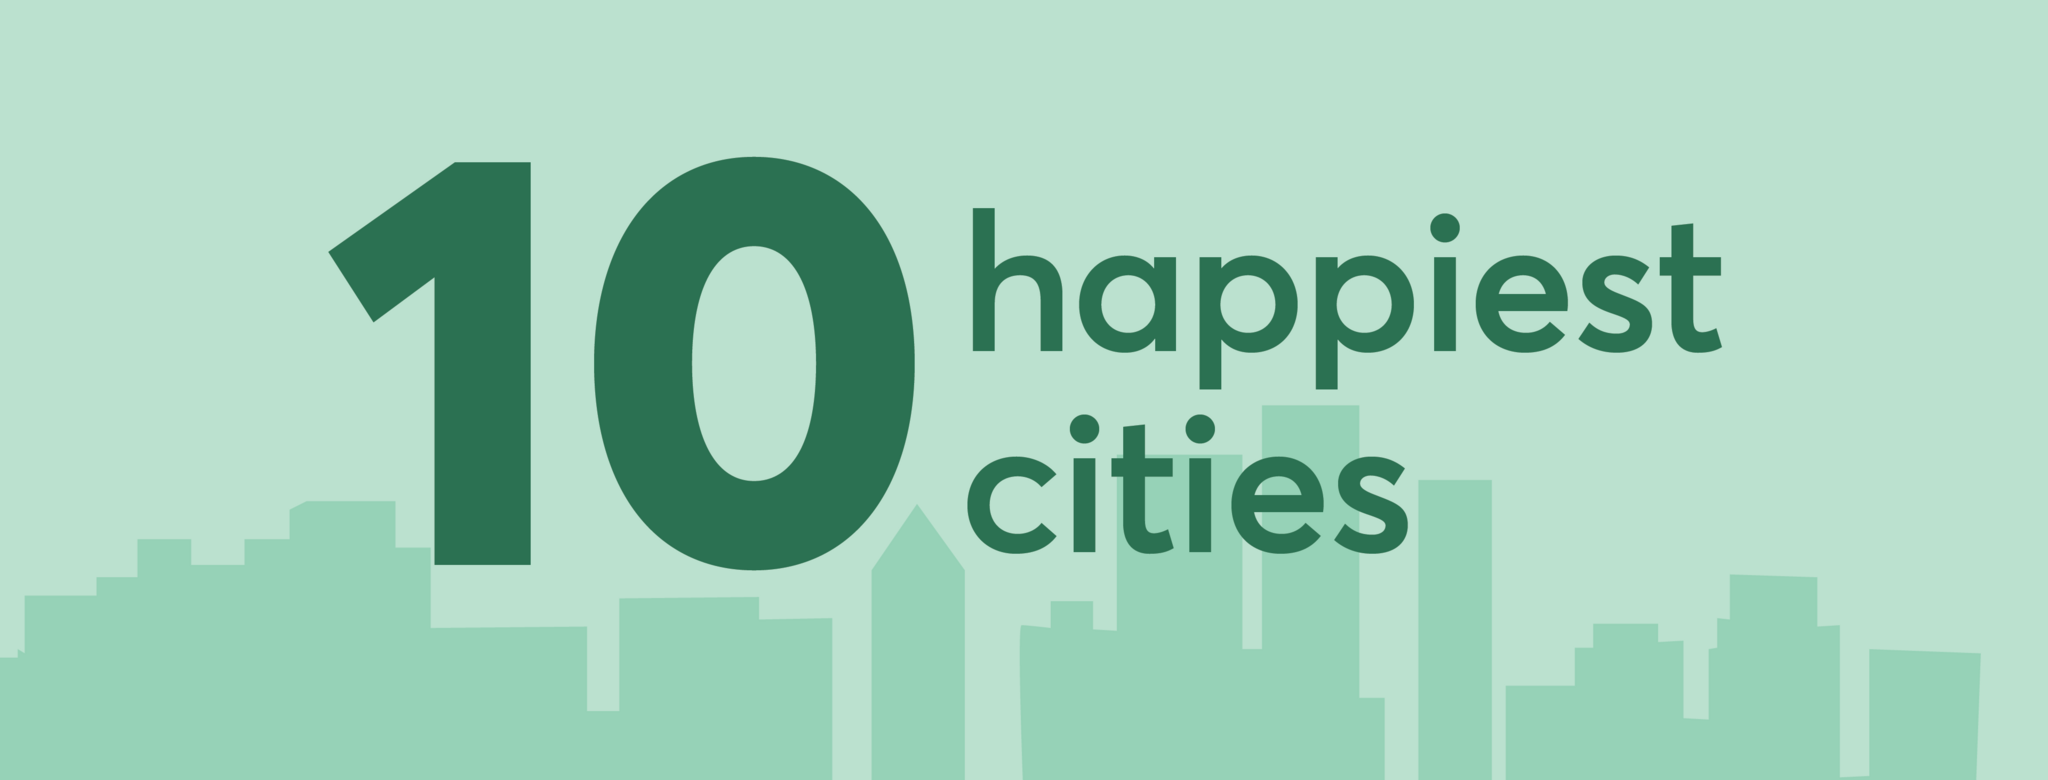 10 happiest cities text over a green skyline